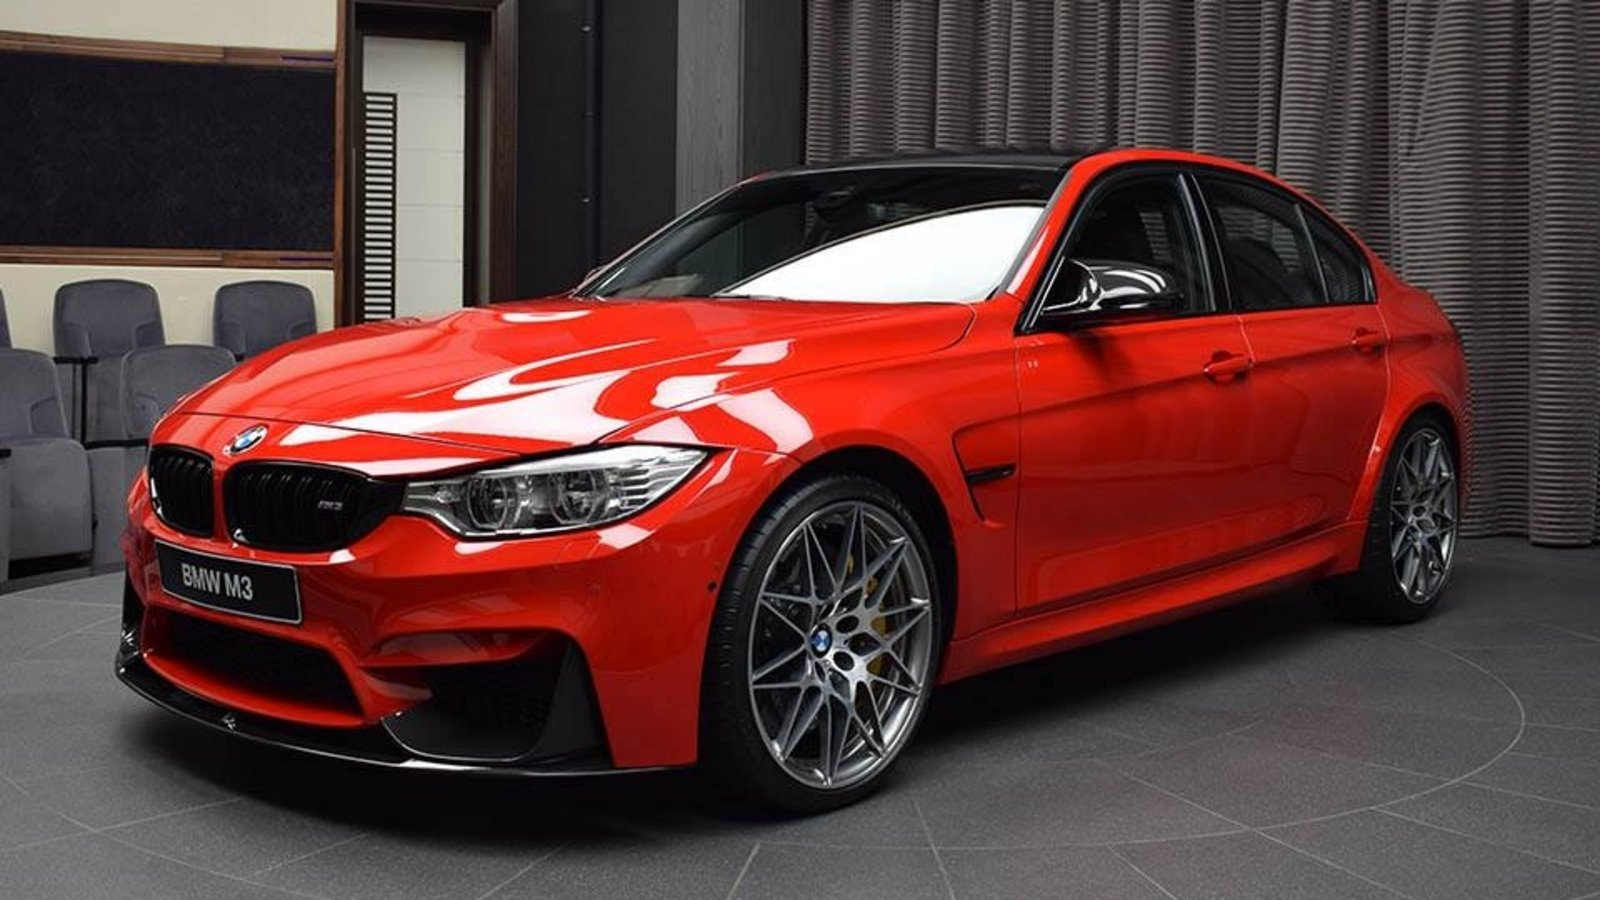 Bmw M3 Looks Amazing Wearing Ferrari Red Paint News Top